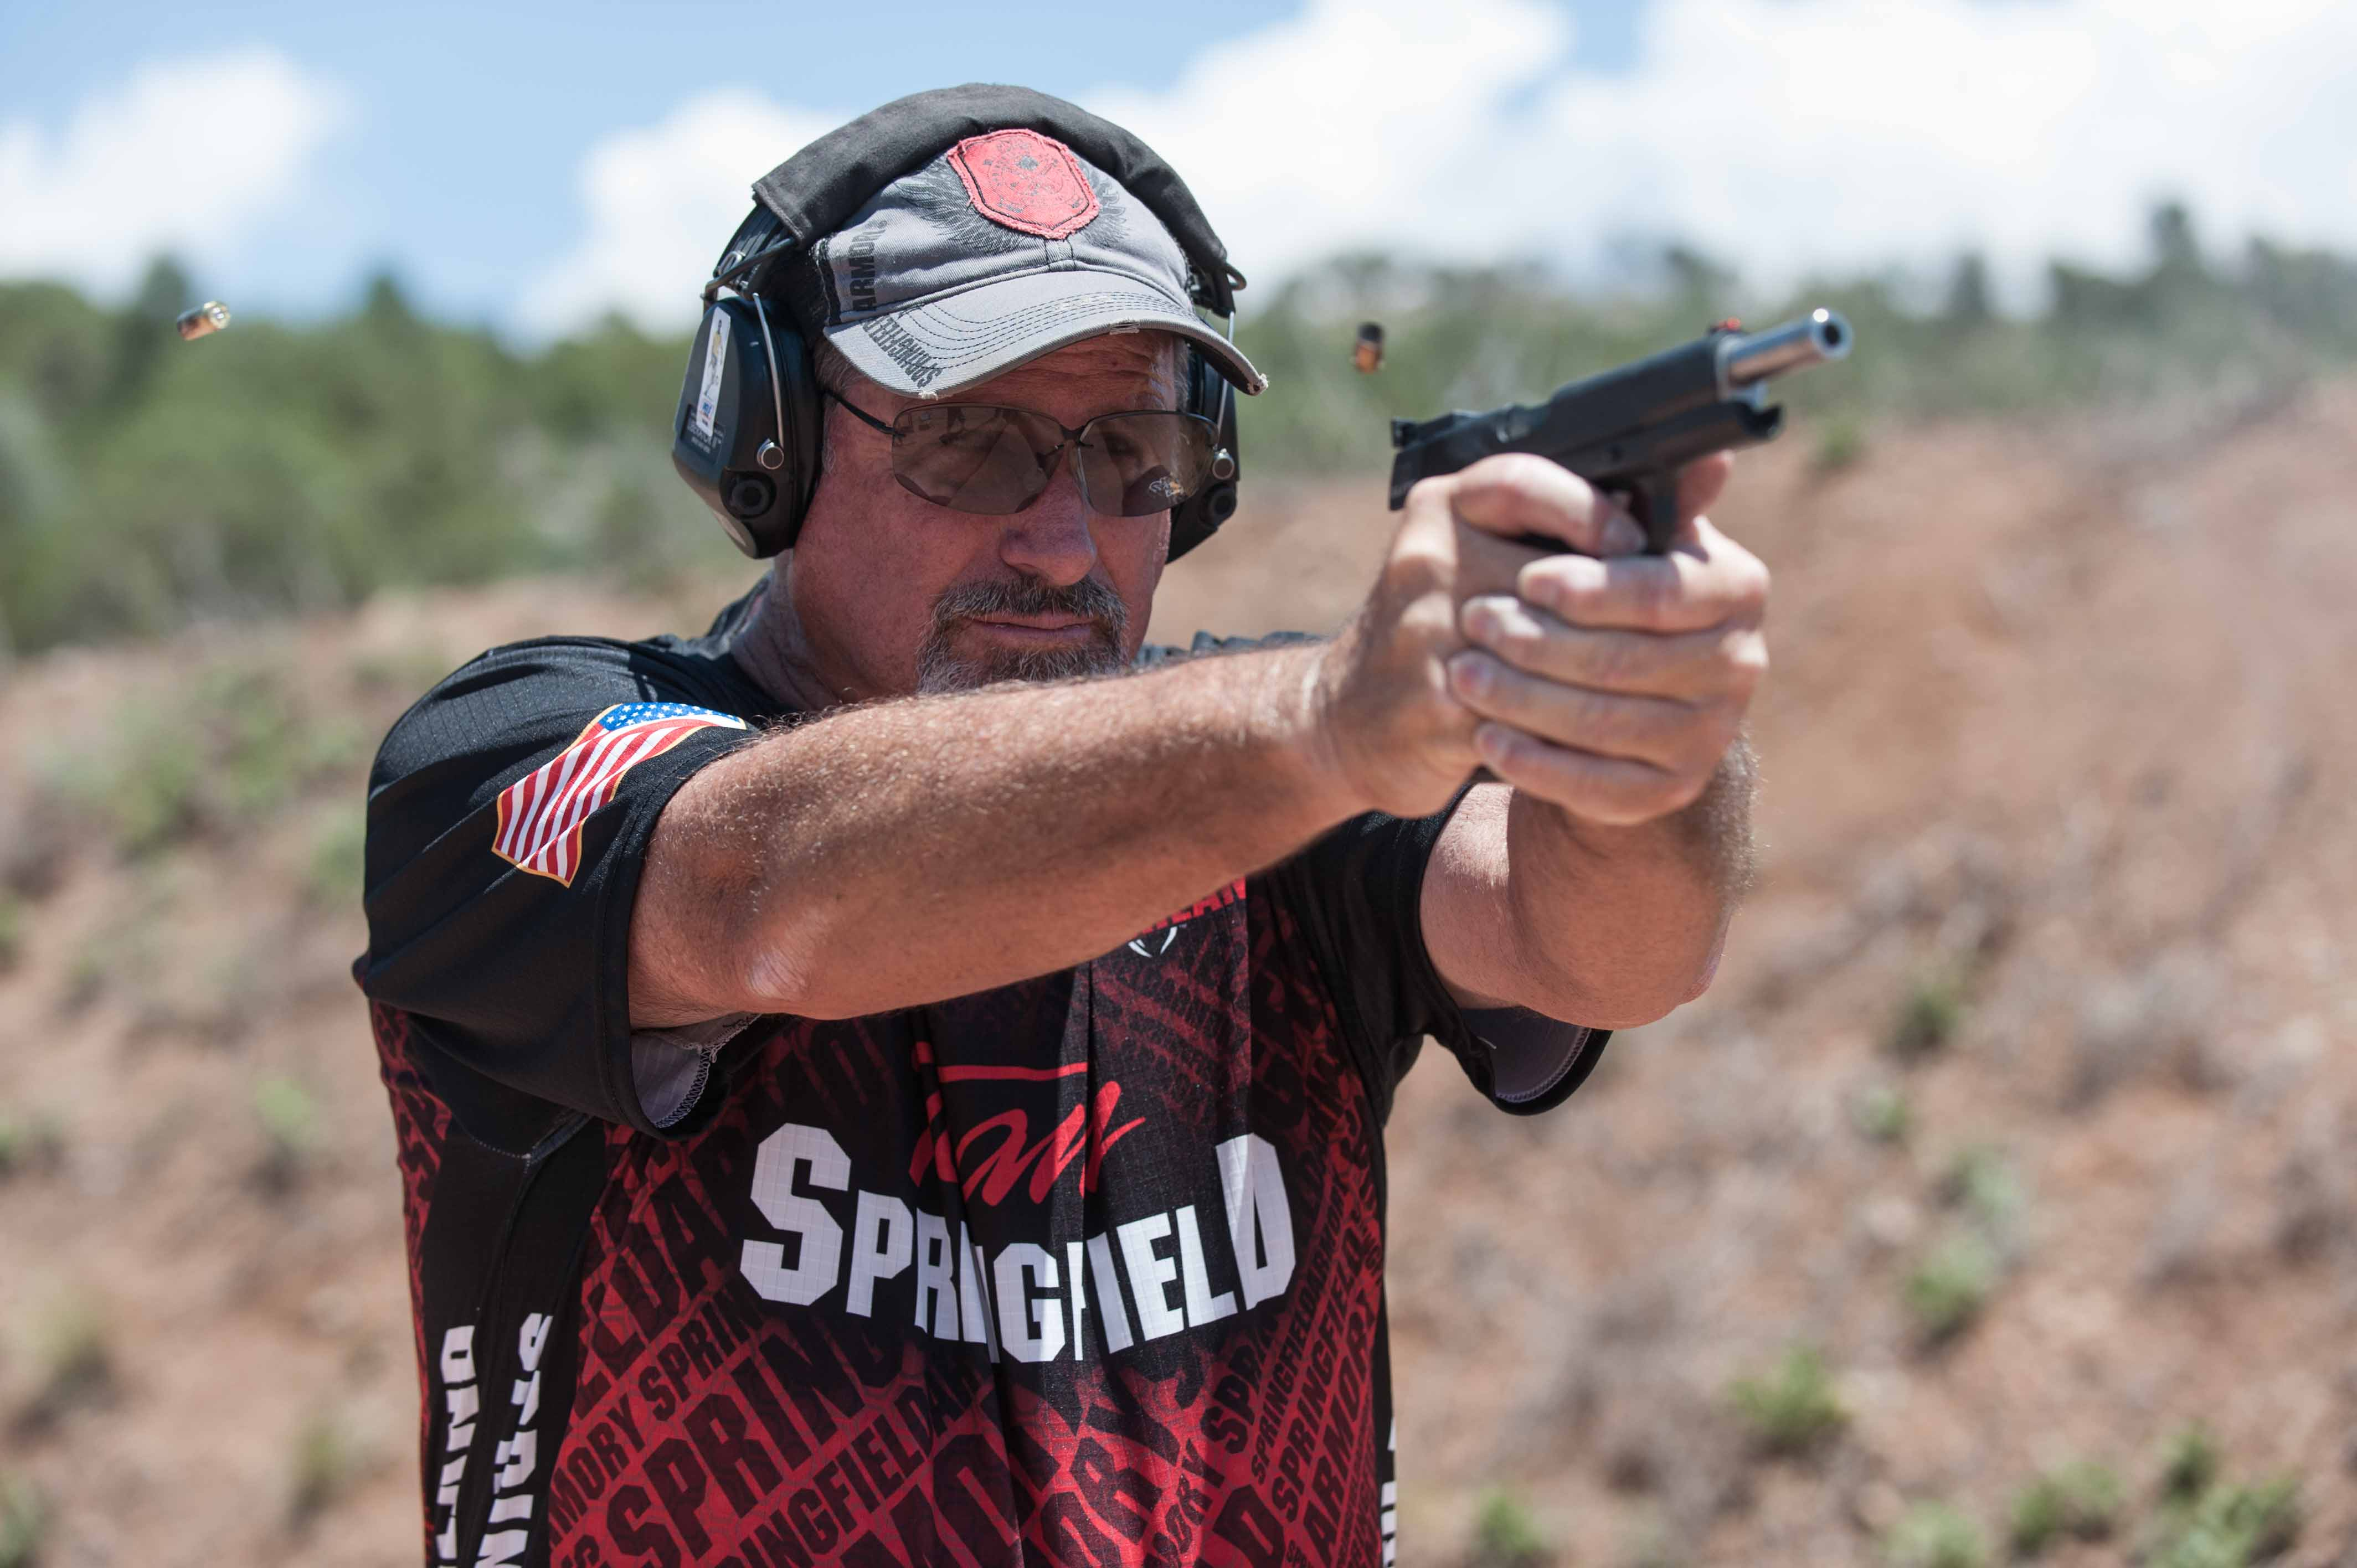 Rob shooting RO Elite Target model_JSP0641.jpg